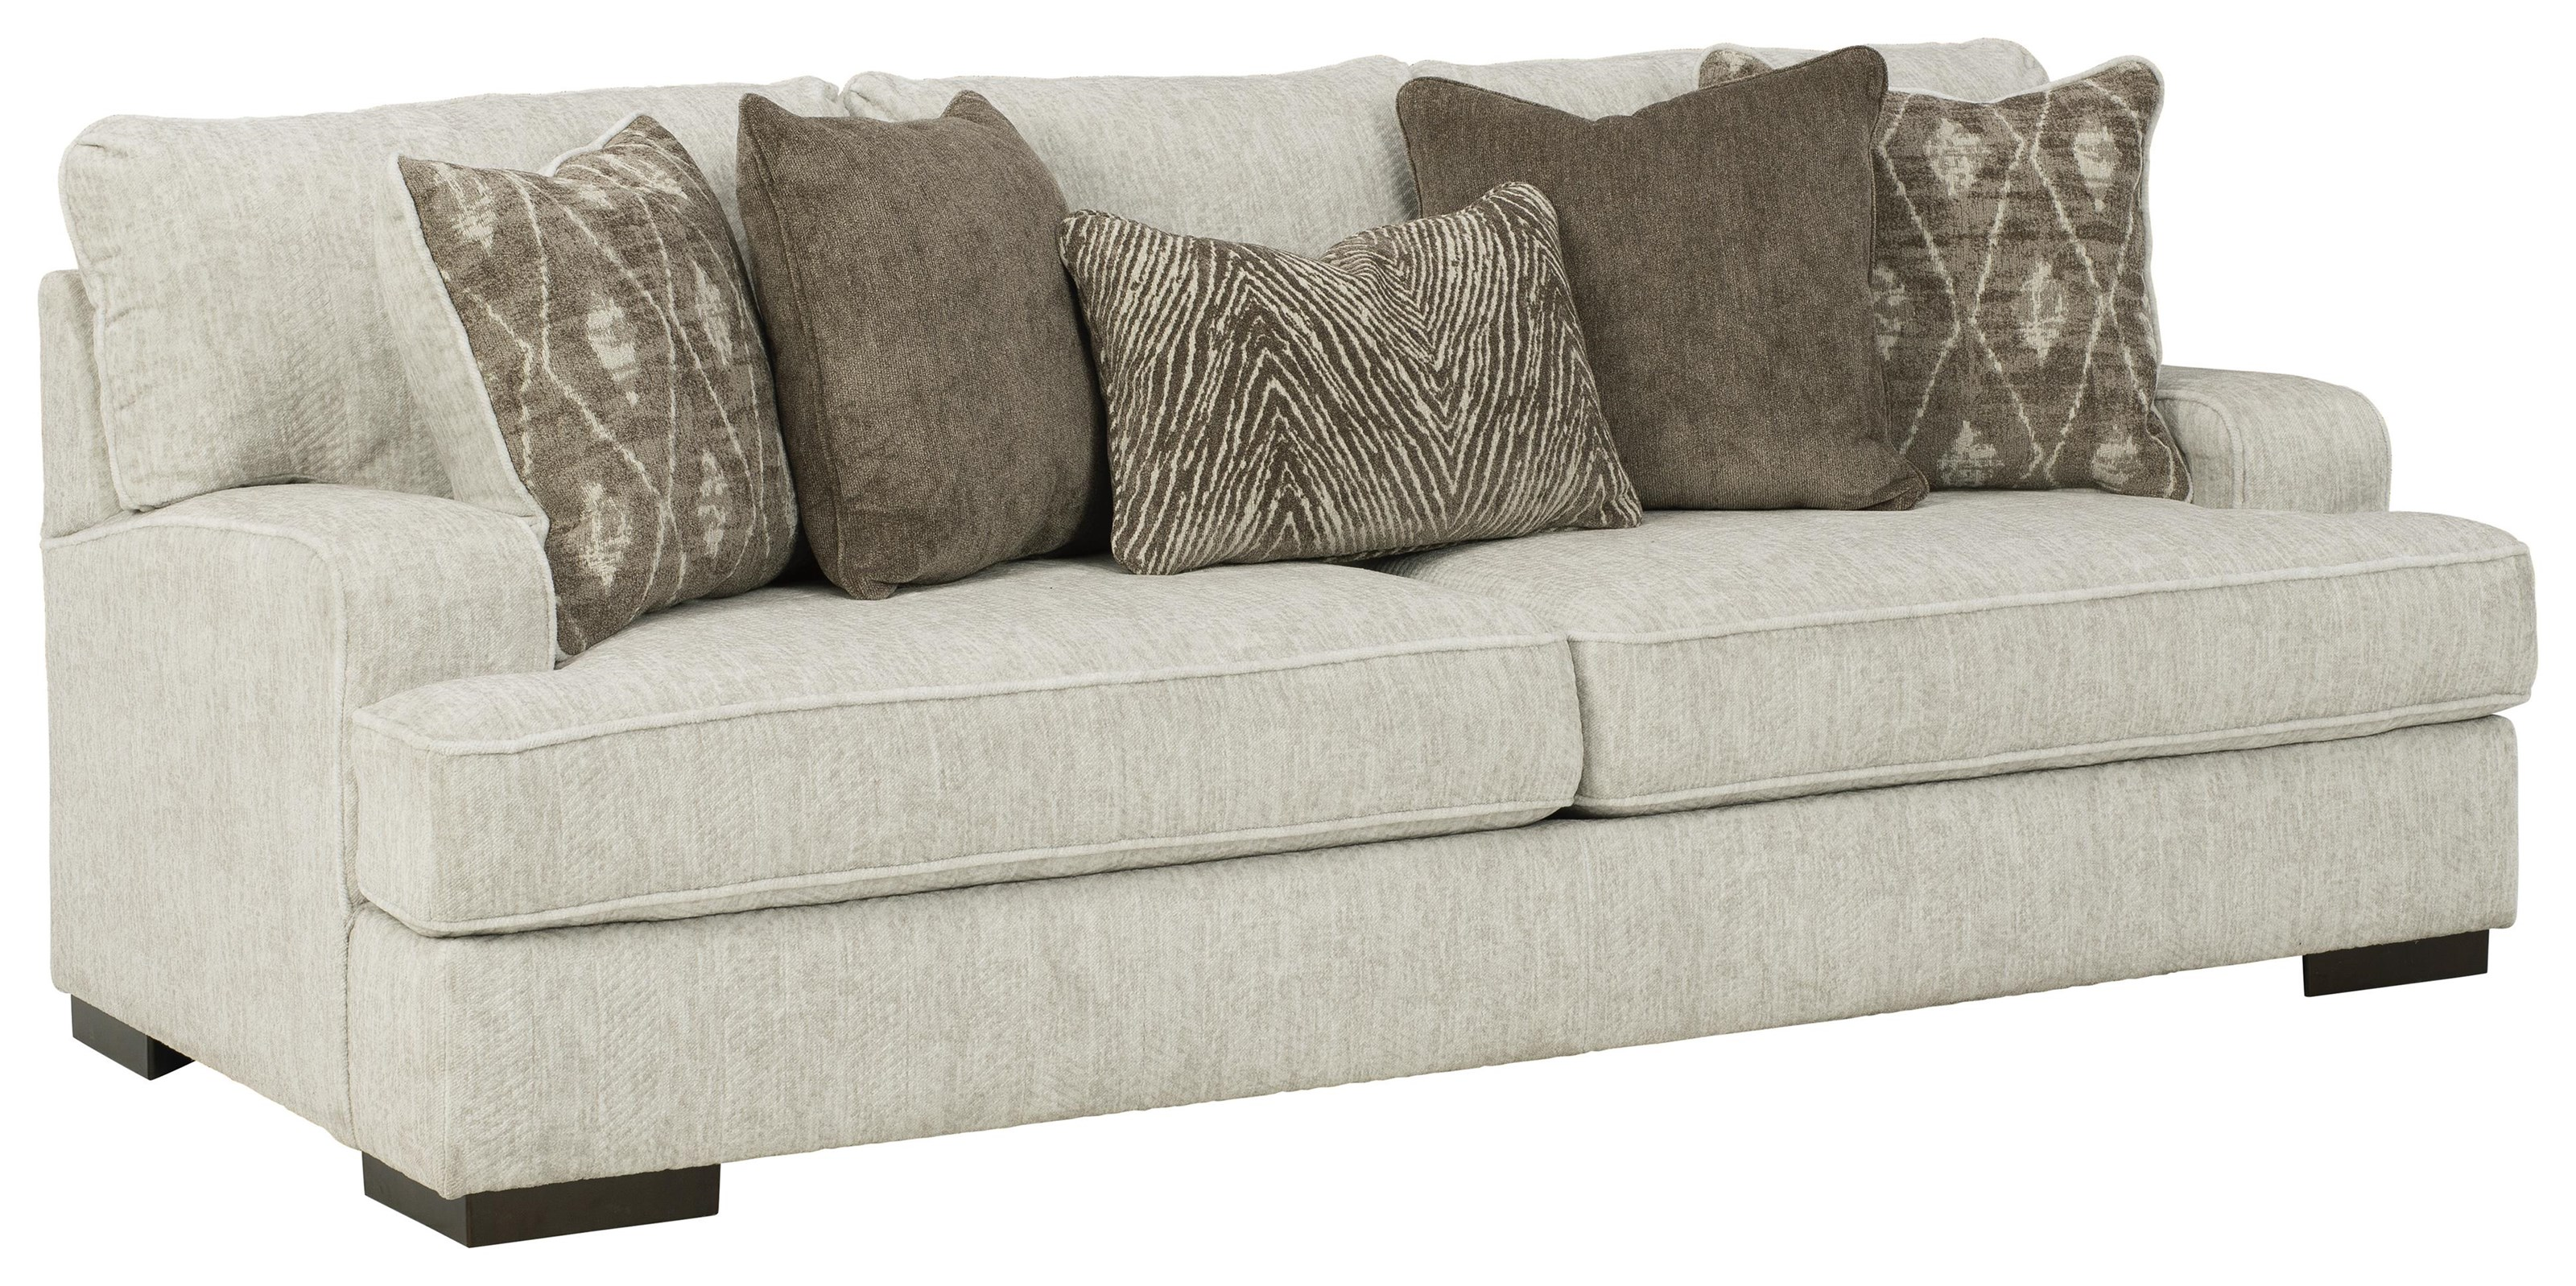 31201 Alesandra Sofa by Signature Design by Ashley at Furniture and ApplianceMart